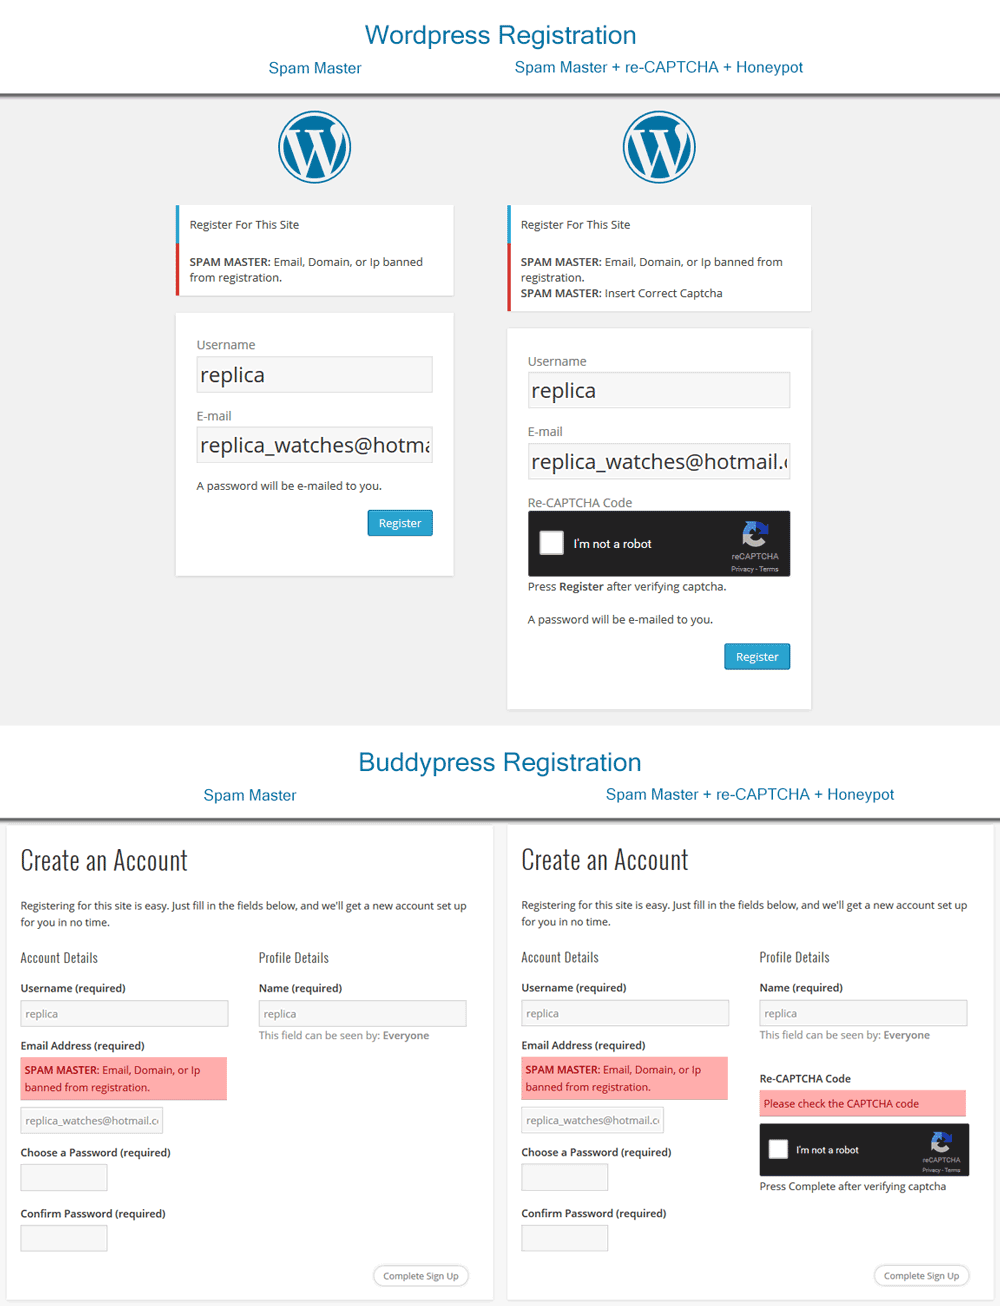 Wordpress Registration. Spam Master with re-CAPTCHA plus Honeypot traps